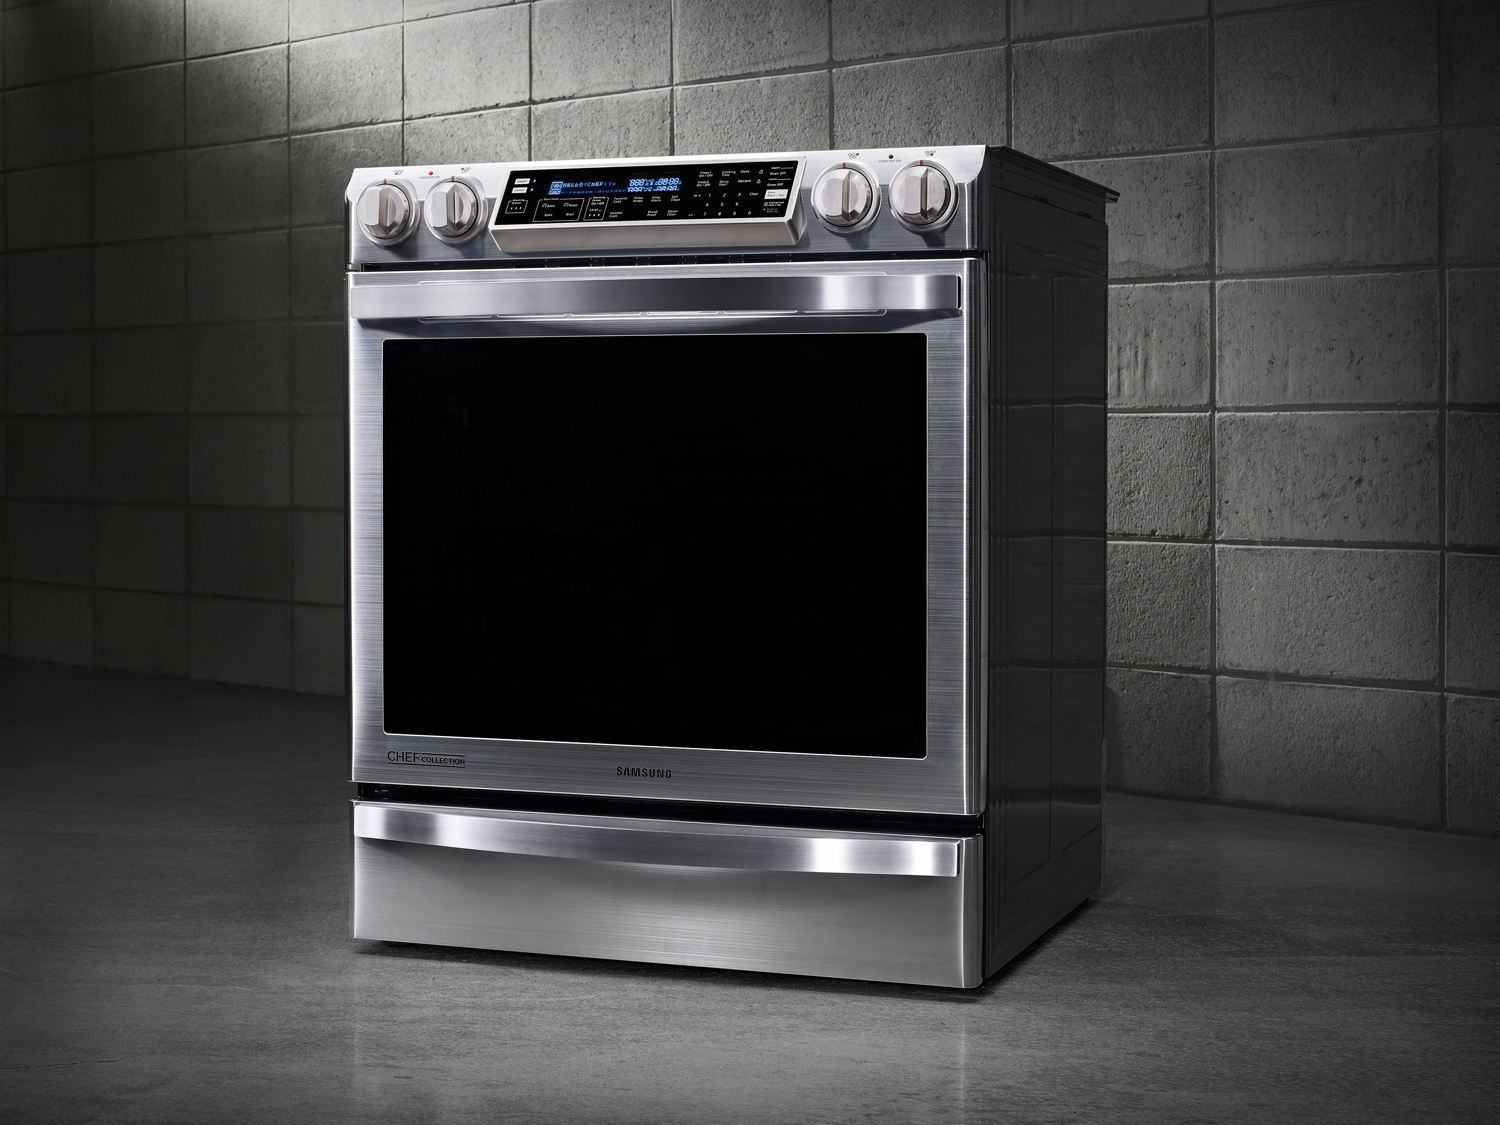 Samsung Chef Collection Range